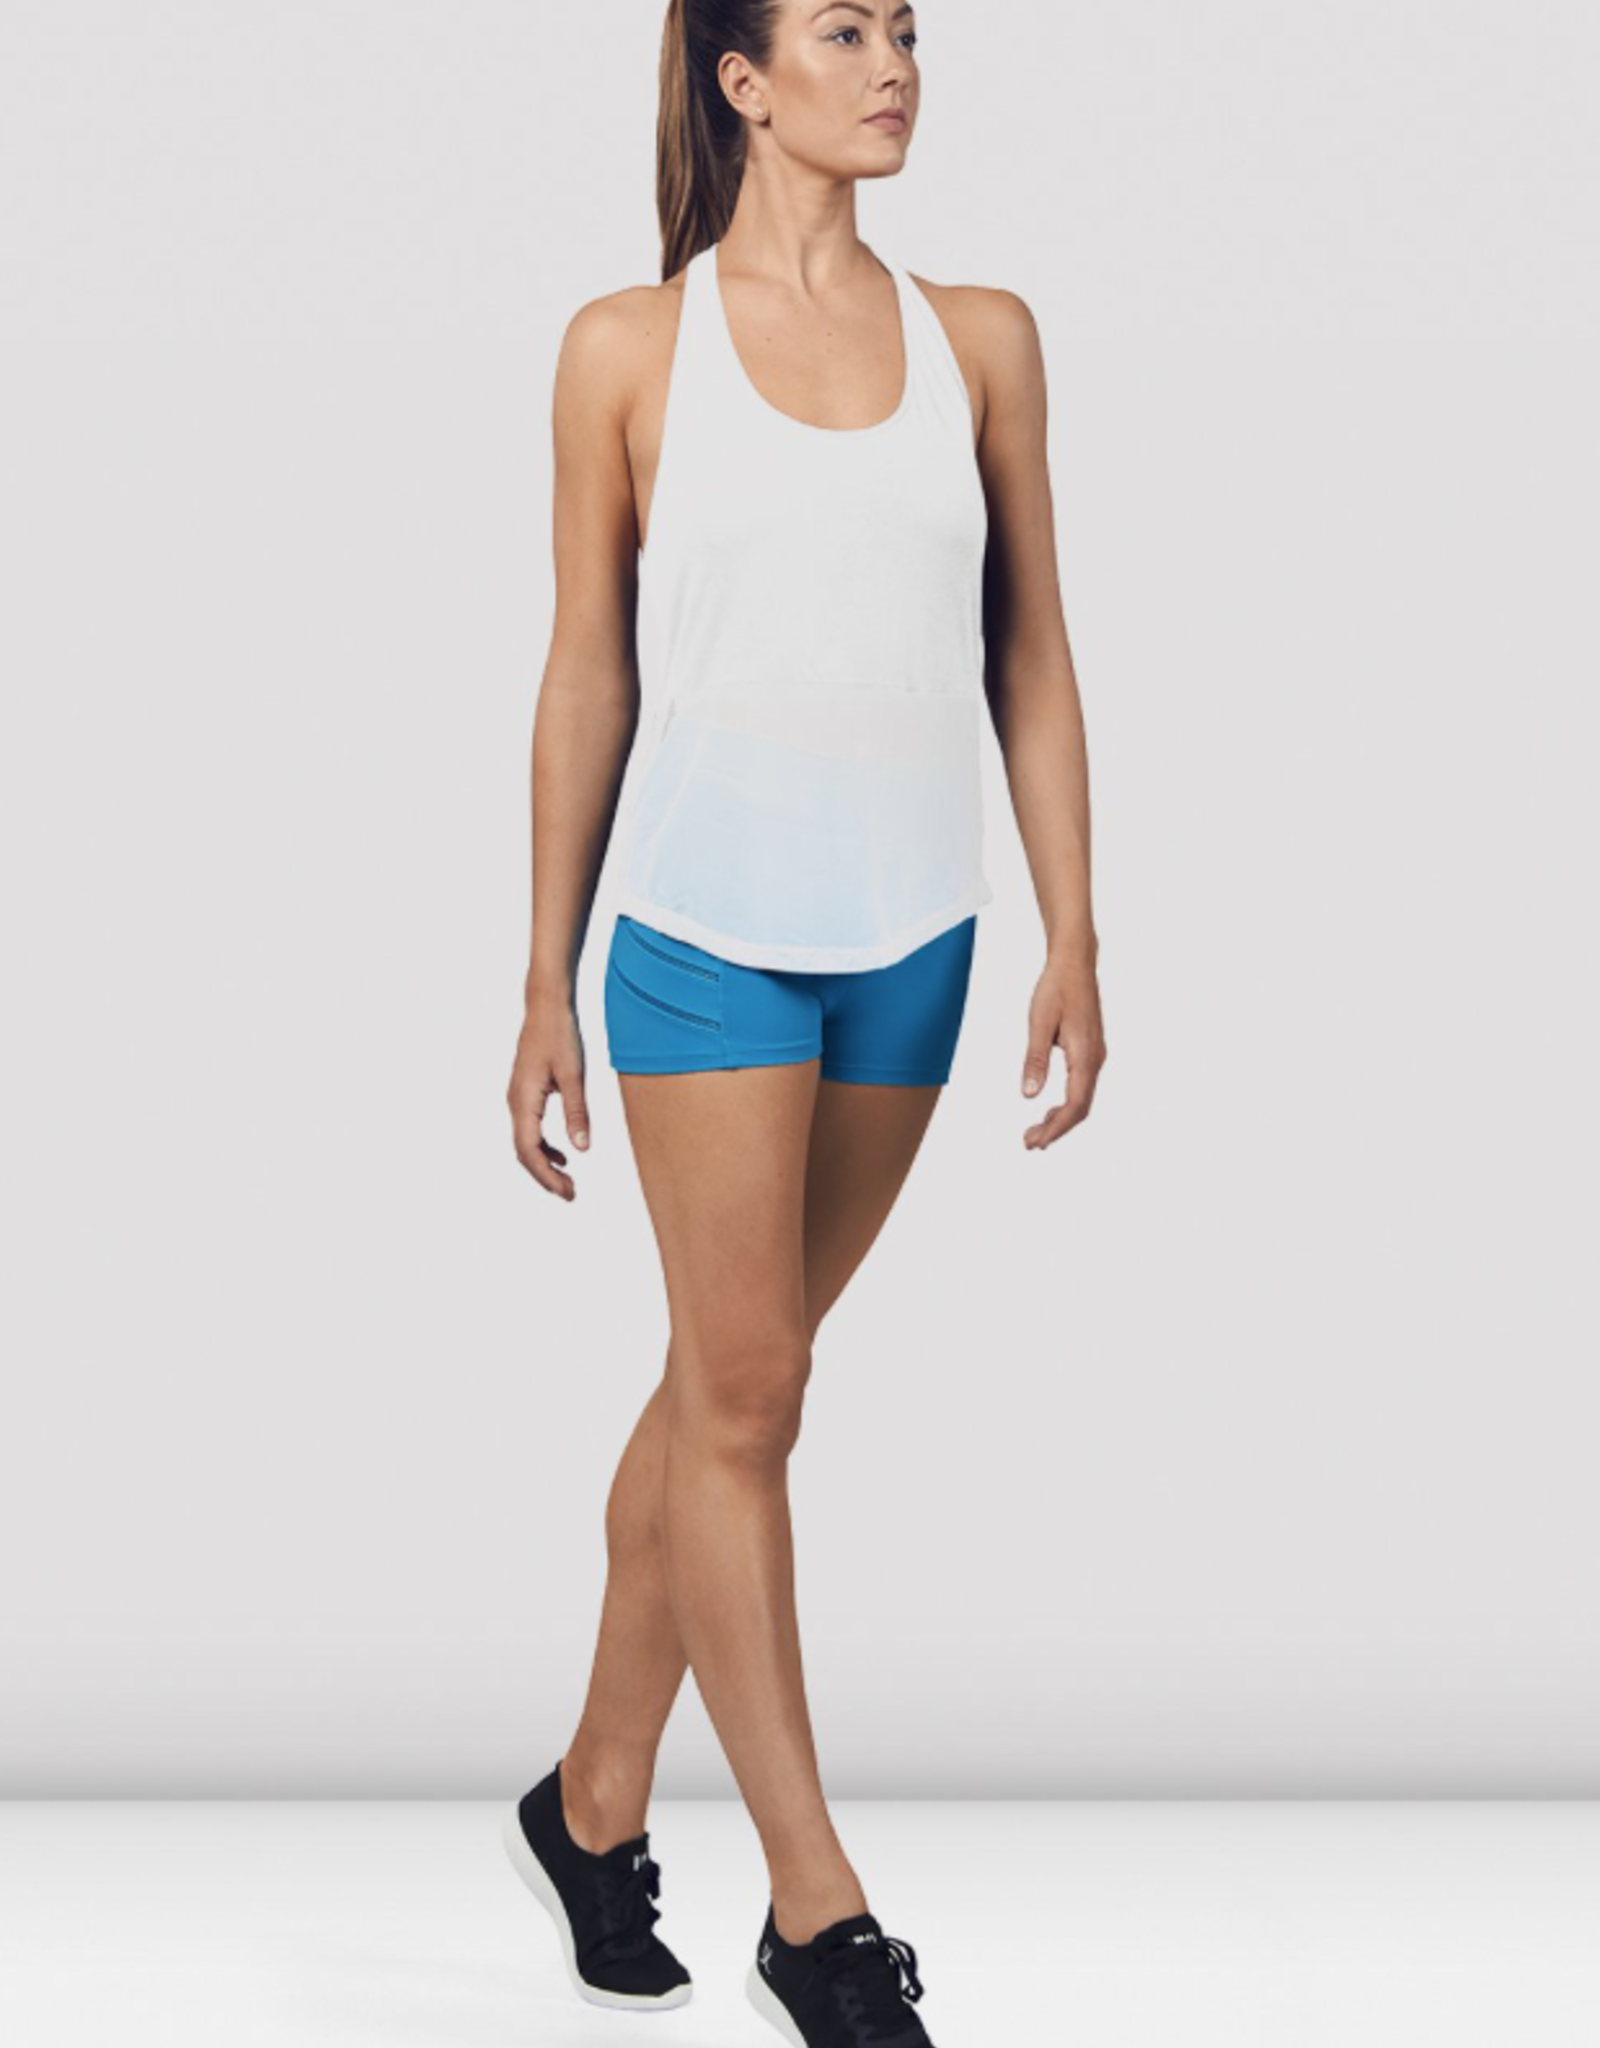 BLOCH MESH DETAIL TANK TOP WITH BLOCH LOGO (FT5205)